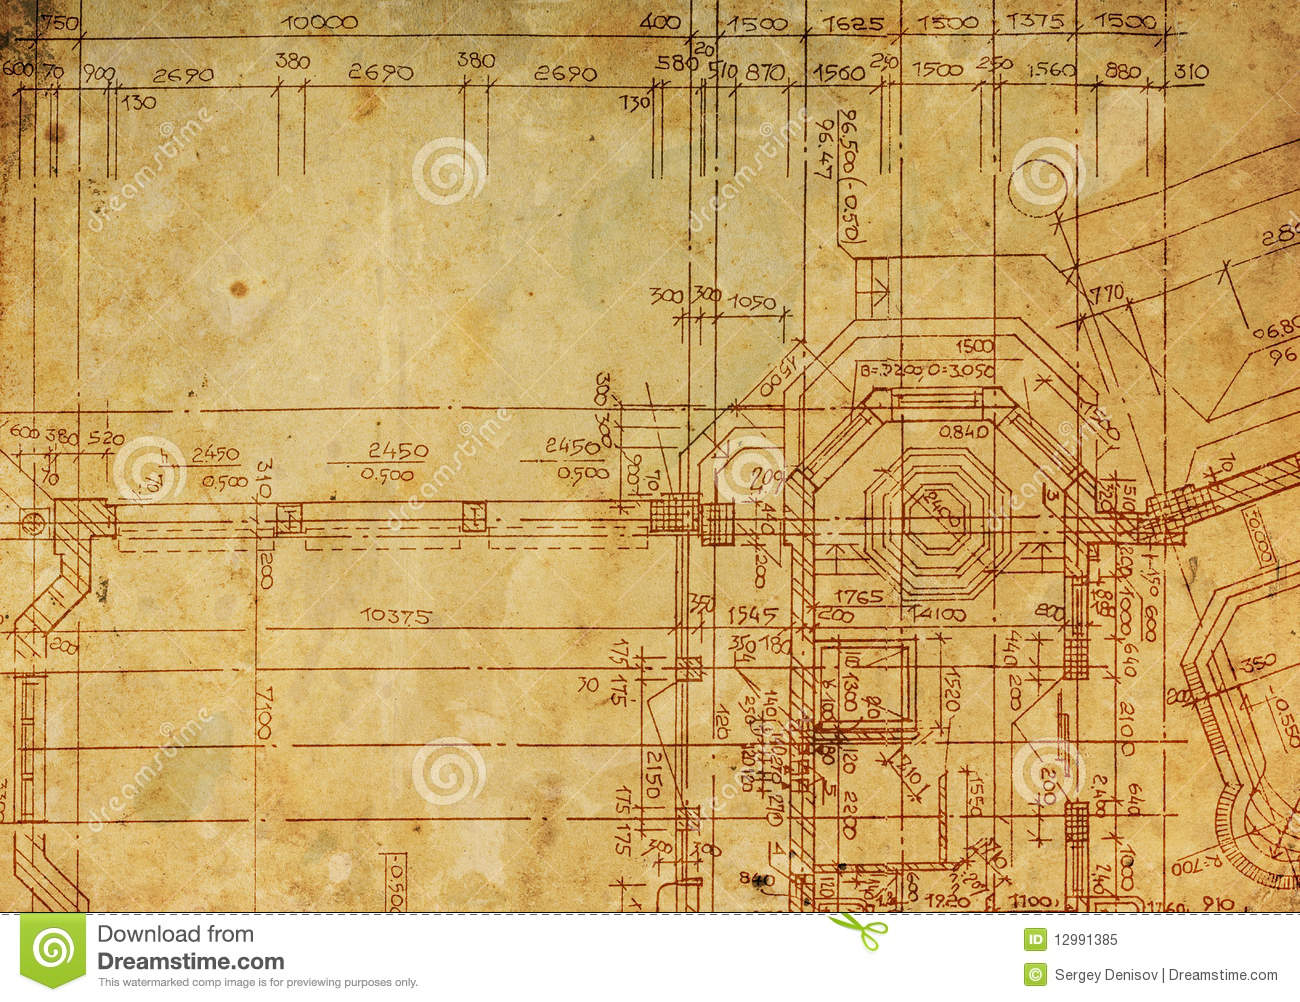 Vintage architectural drawing royalty free stock photo for Architecture antique